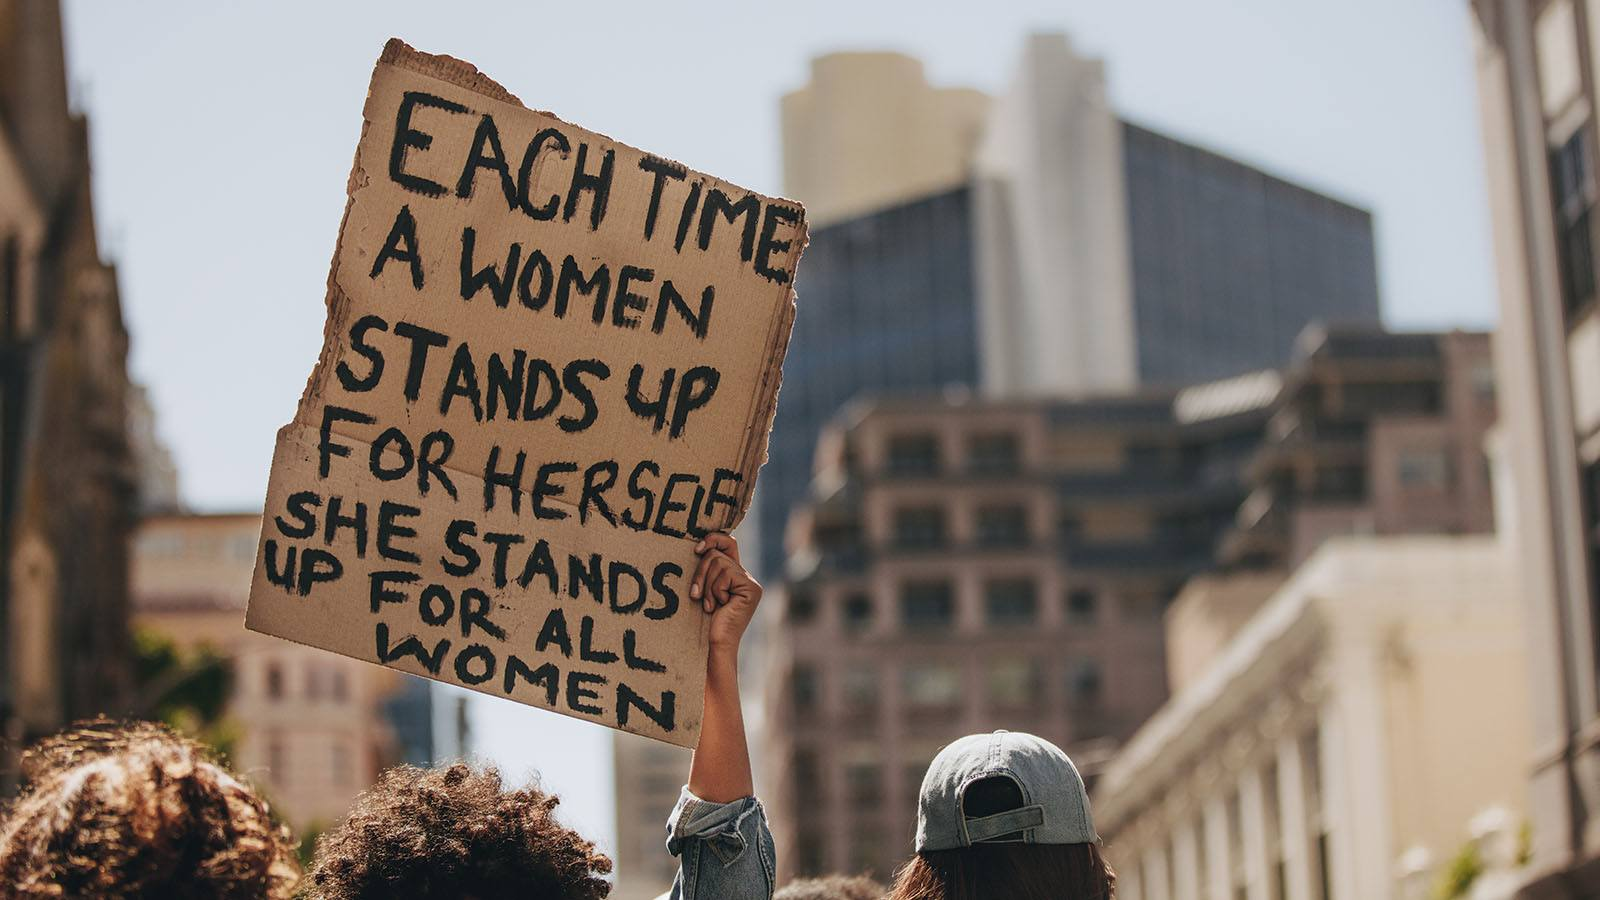 Image of a protest with a hand holding up a sign saying 'Each time a woman stands up for herself she stands up for all women.'